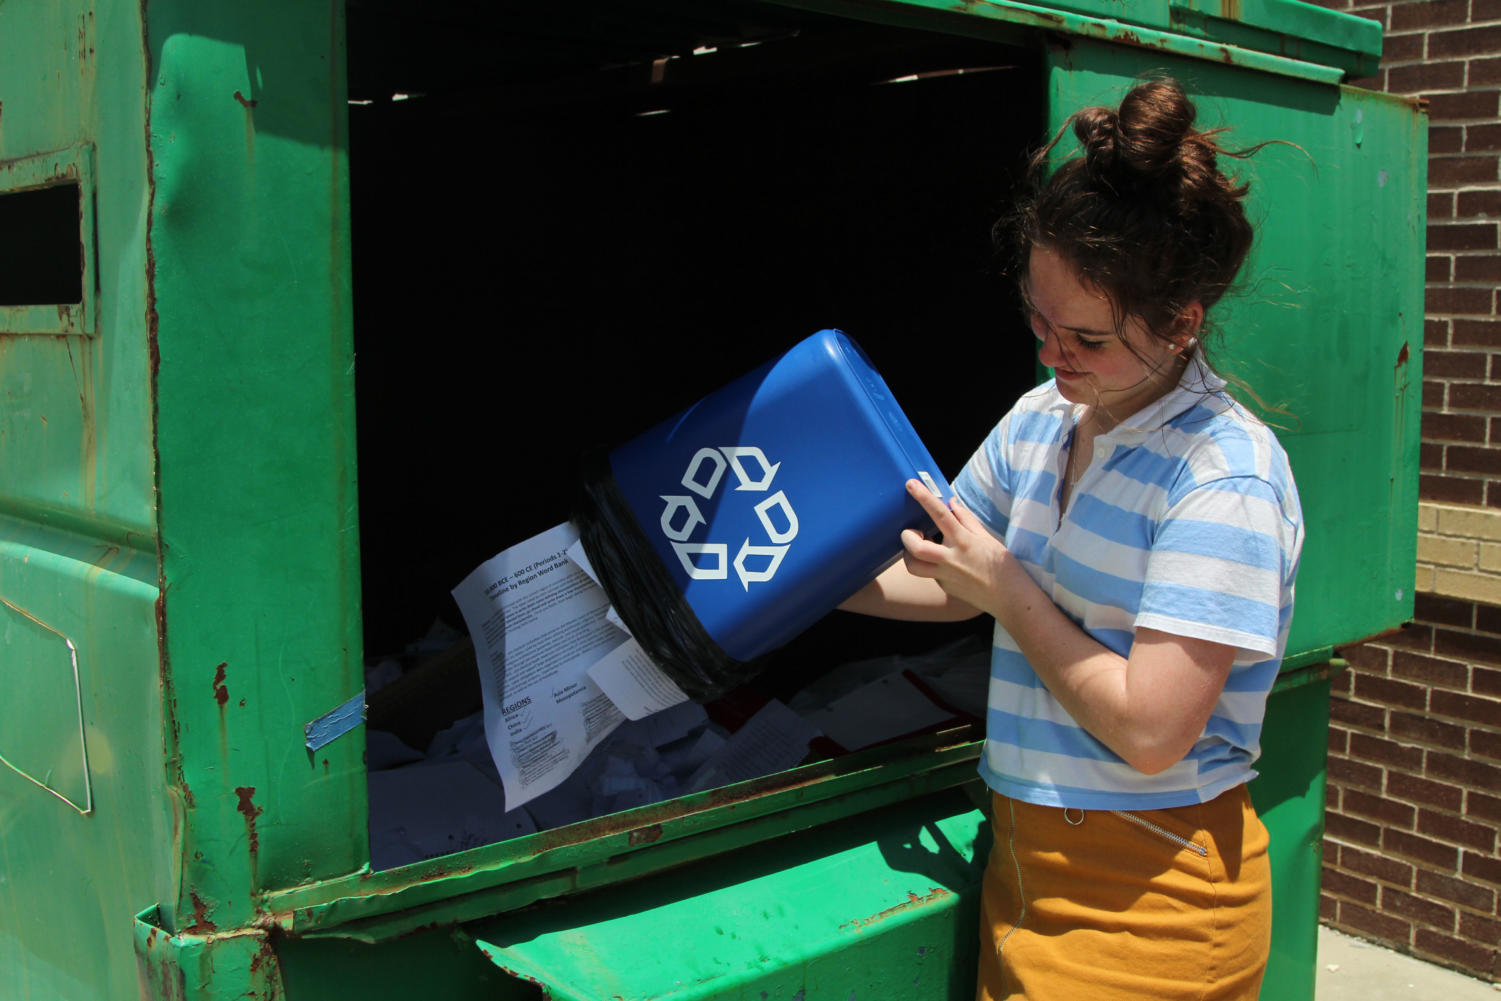 Due to students' skepticism about the school's recycling, The Red Ledger investigated the recycling habits and routines of staff and students.